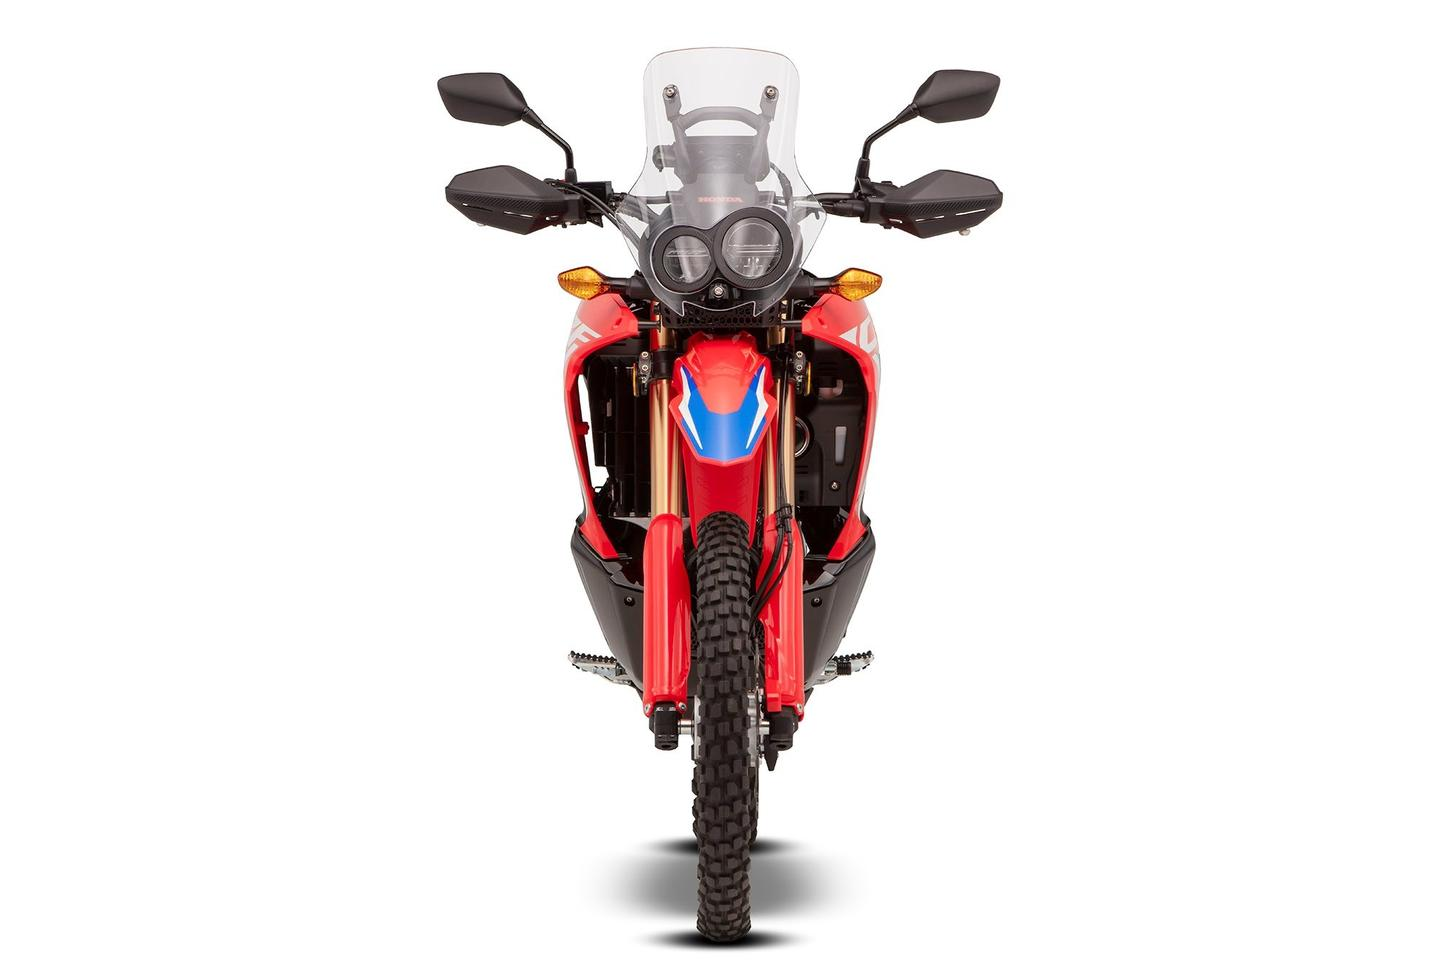 The 2021 Honda CRF300 Rally retains the assymetrical double headlight setup